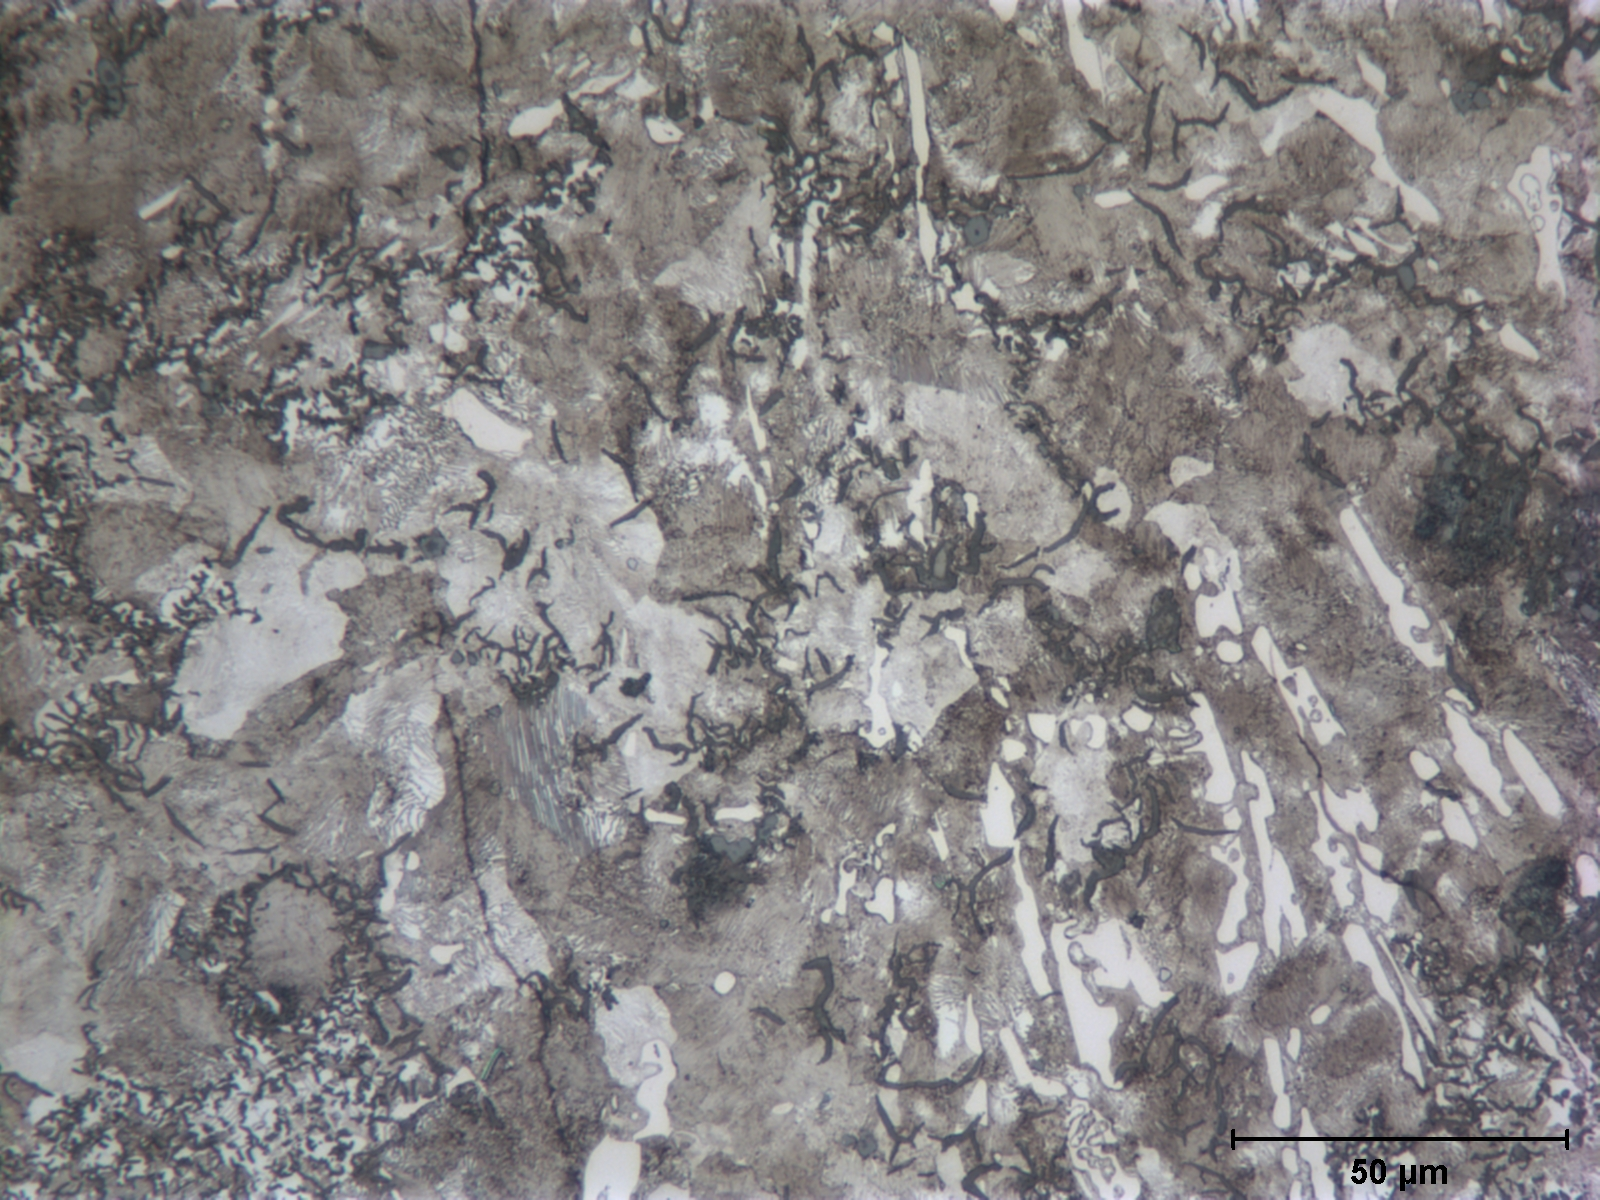 Microstructure of remaining base metal